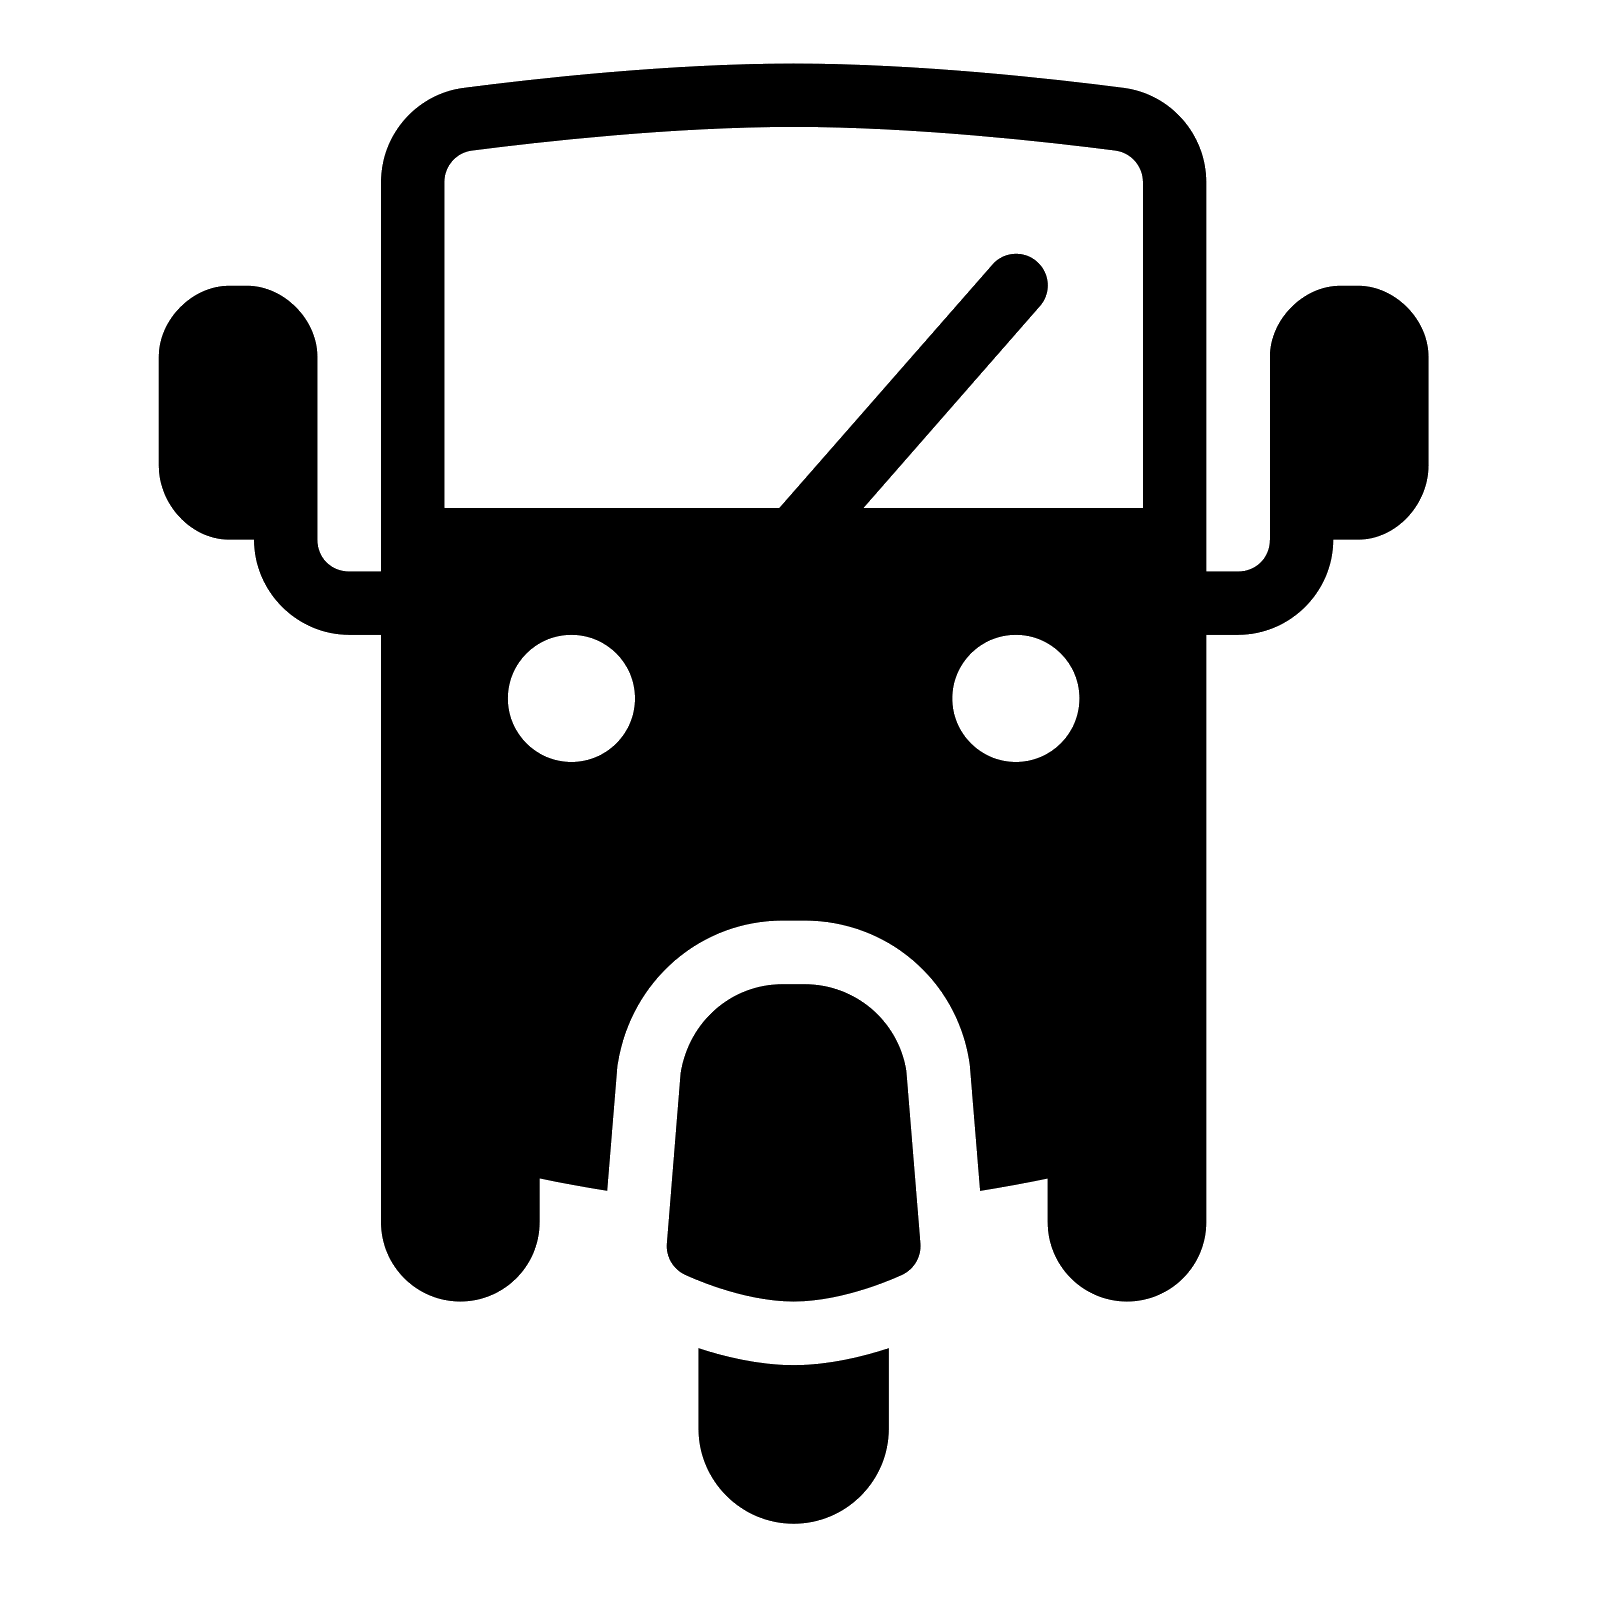 hight resolution of clipart present three wheel car filled icon